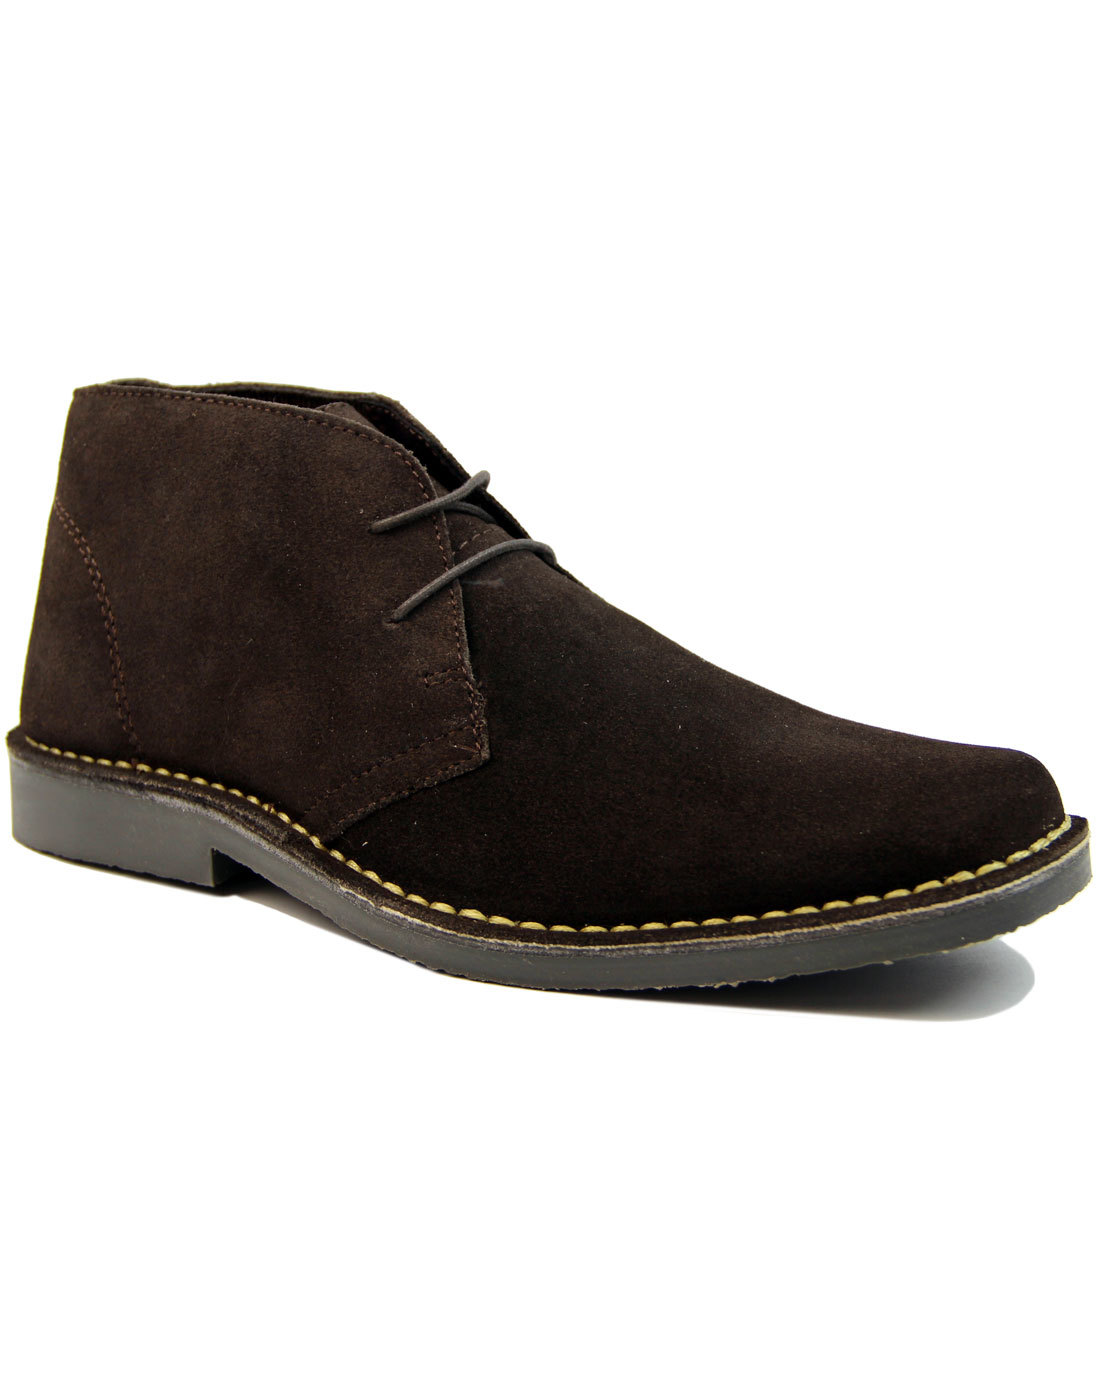 Double Dekker - Mens Mod Suede Desert Boots BROWN